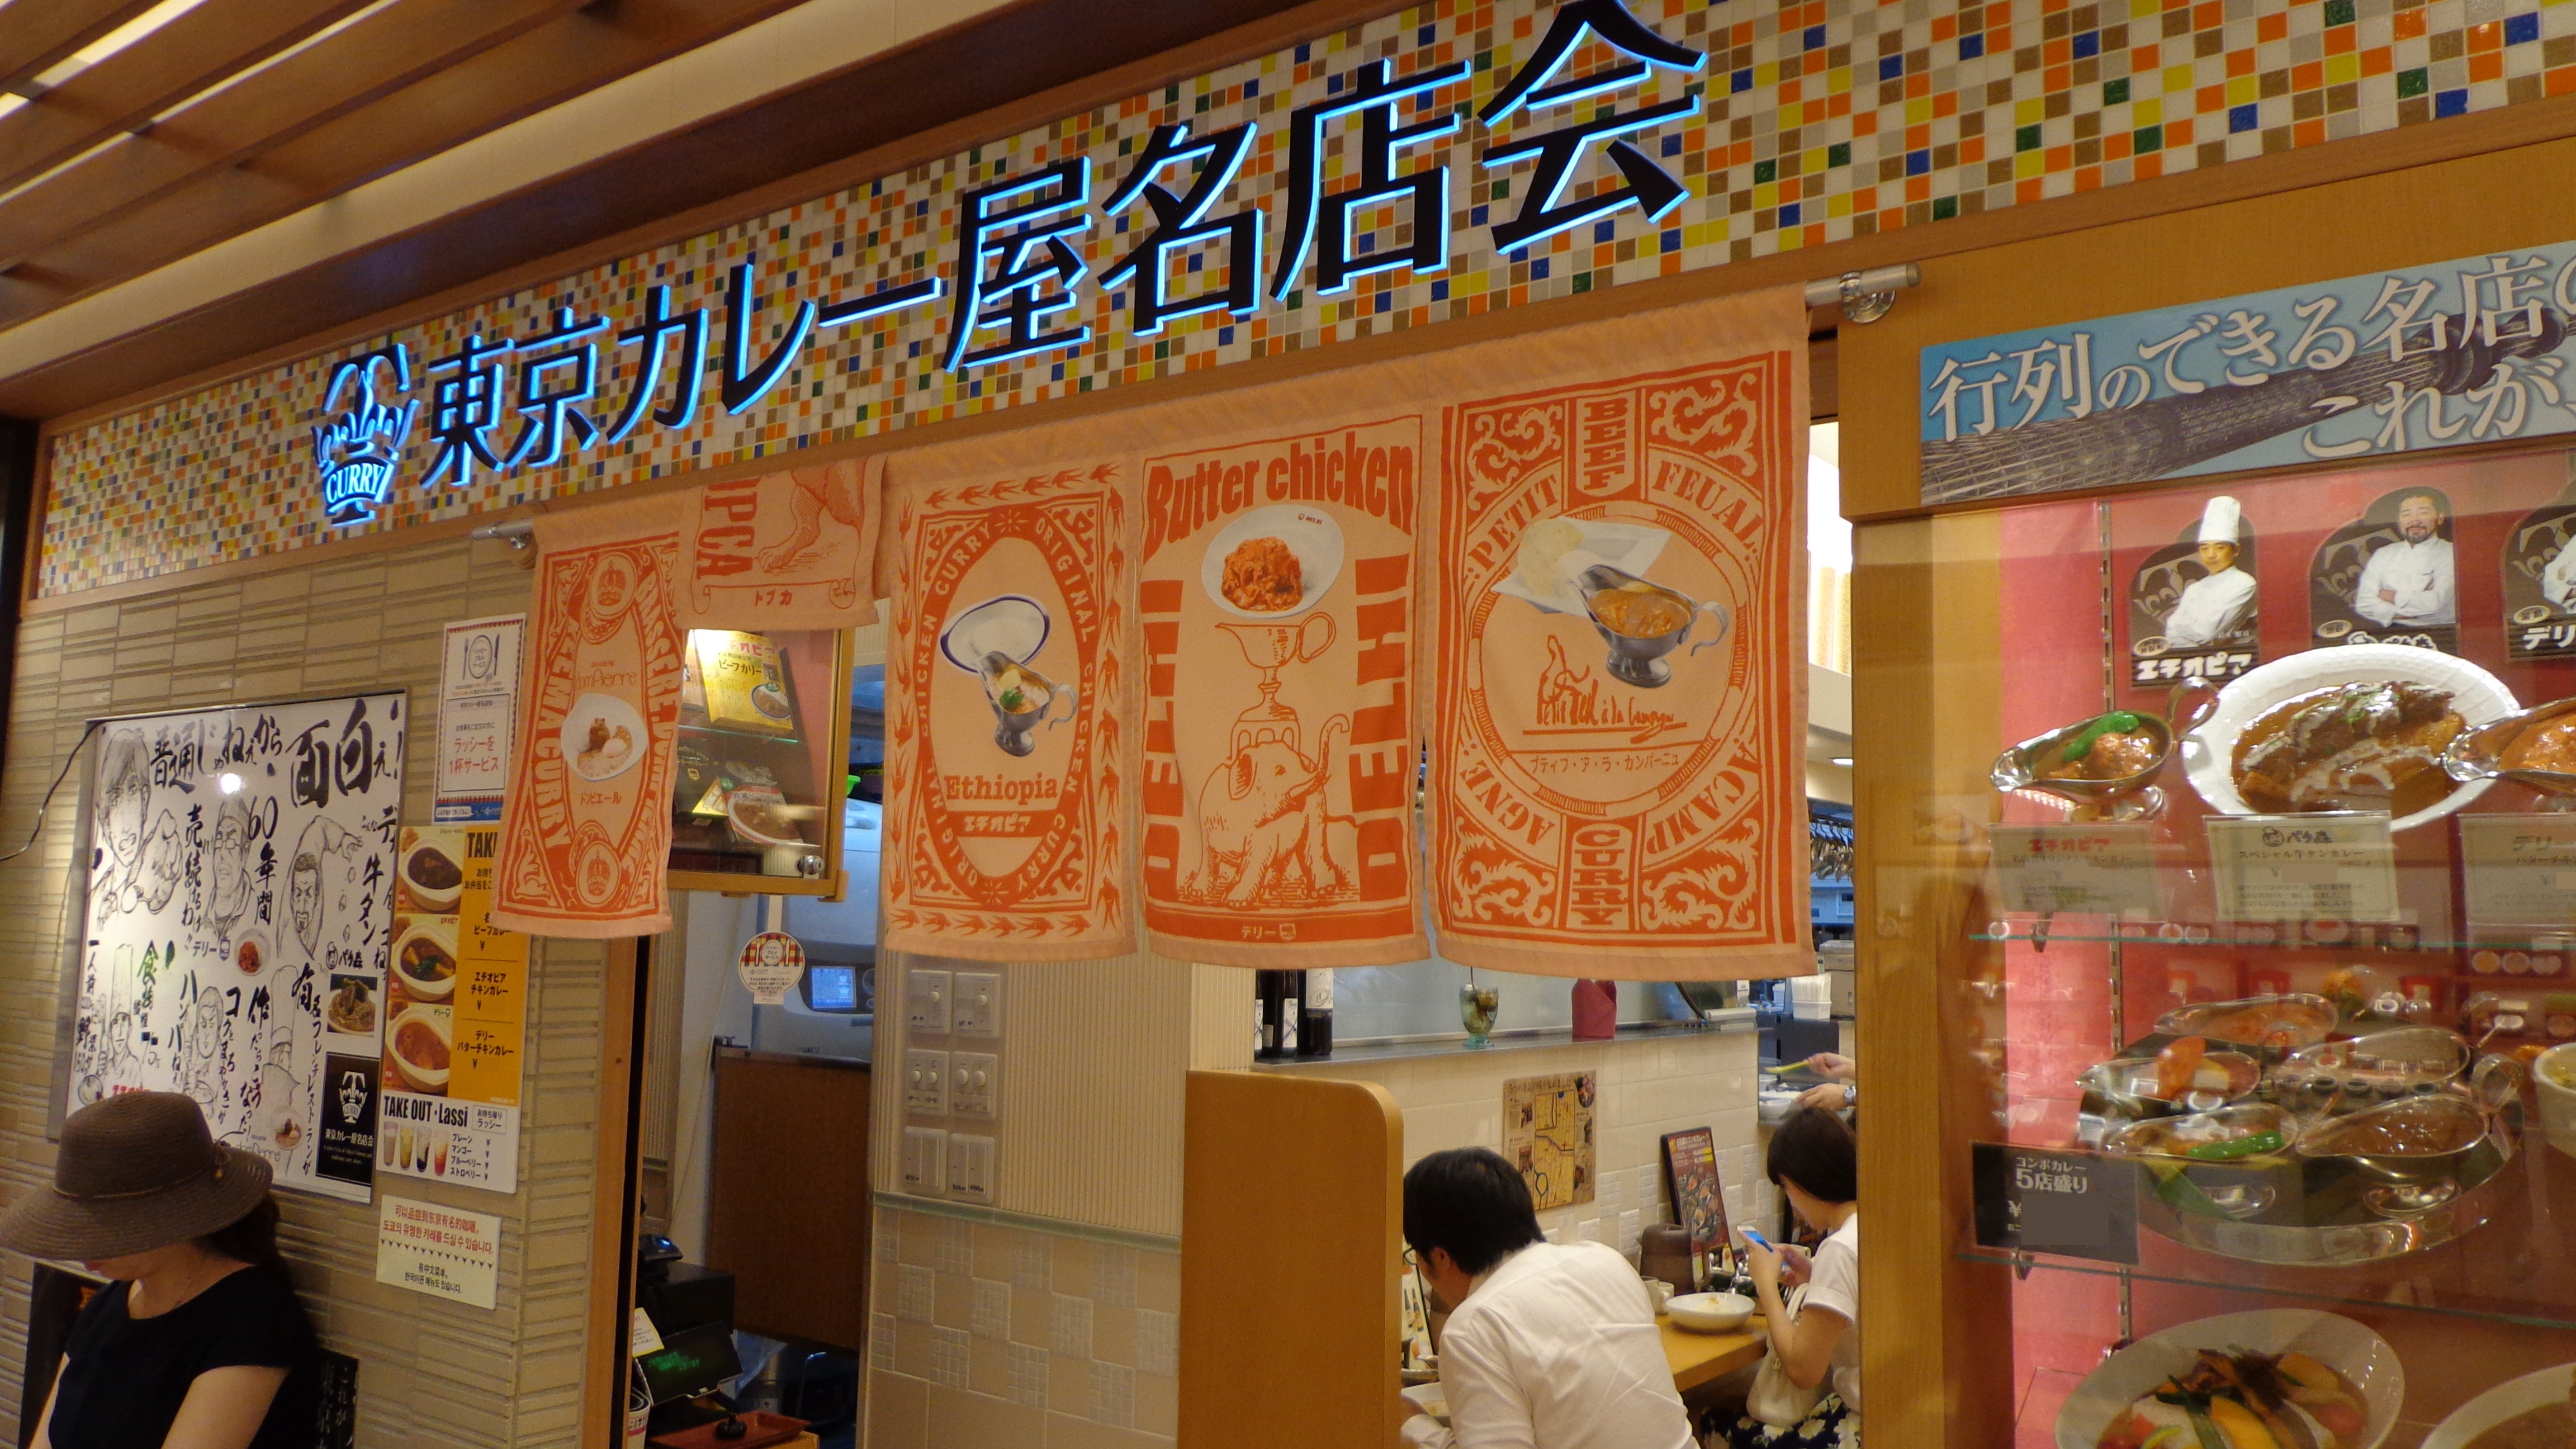 CLUB OF THE TOKYO FAMOUS CURRY DINNERS Curry Restaurant